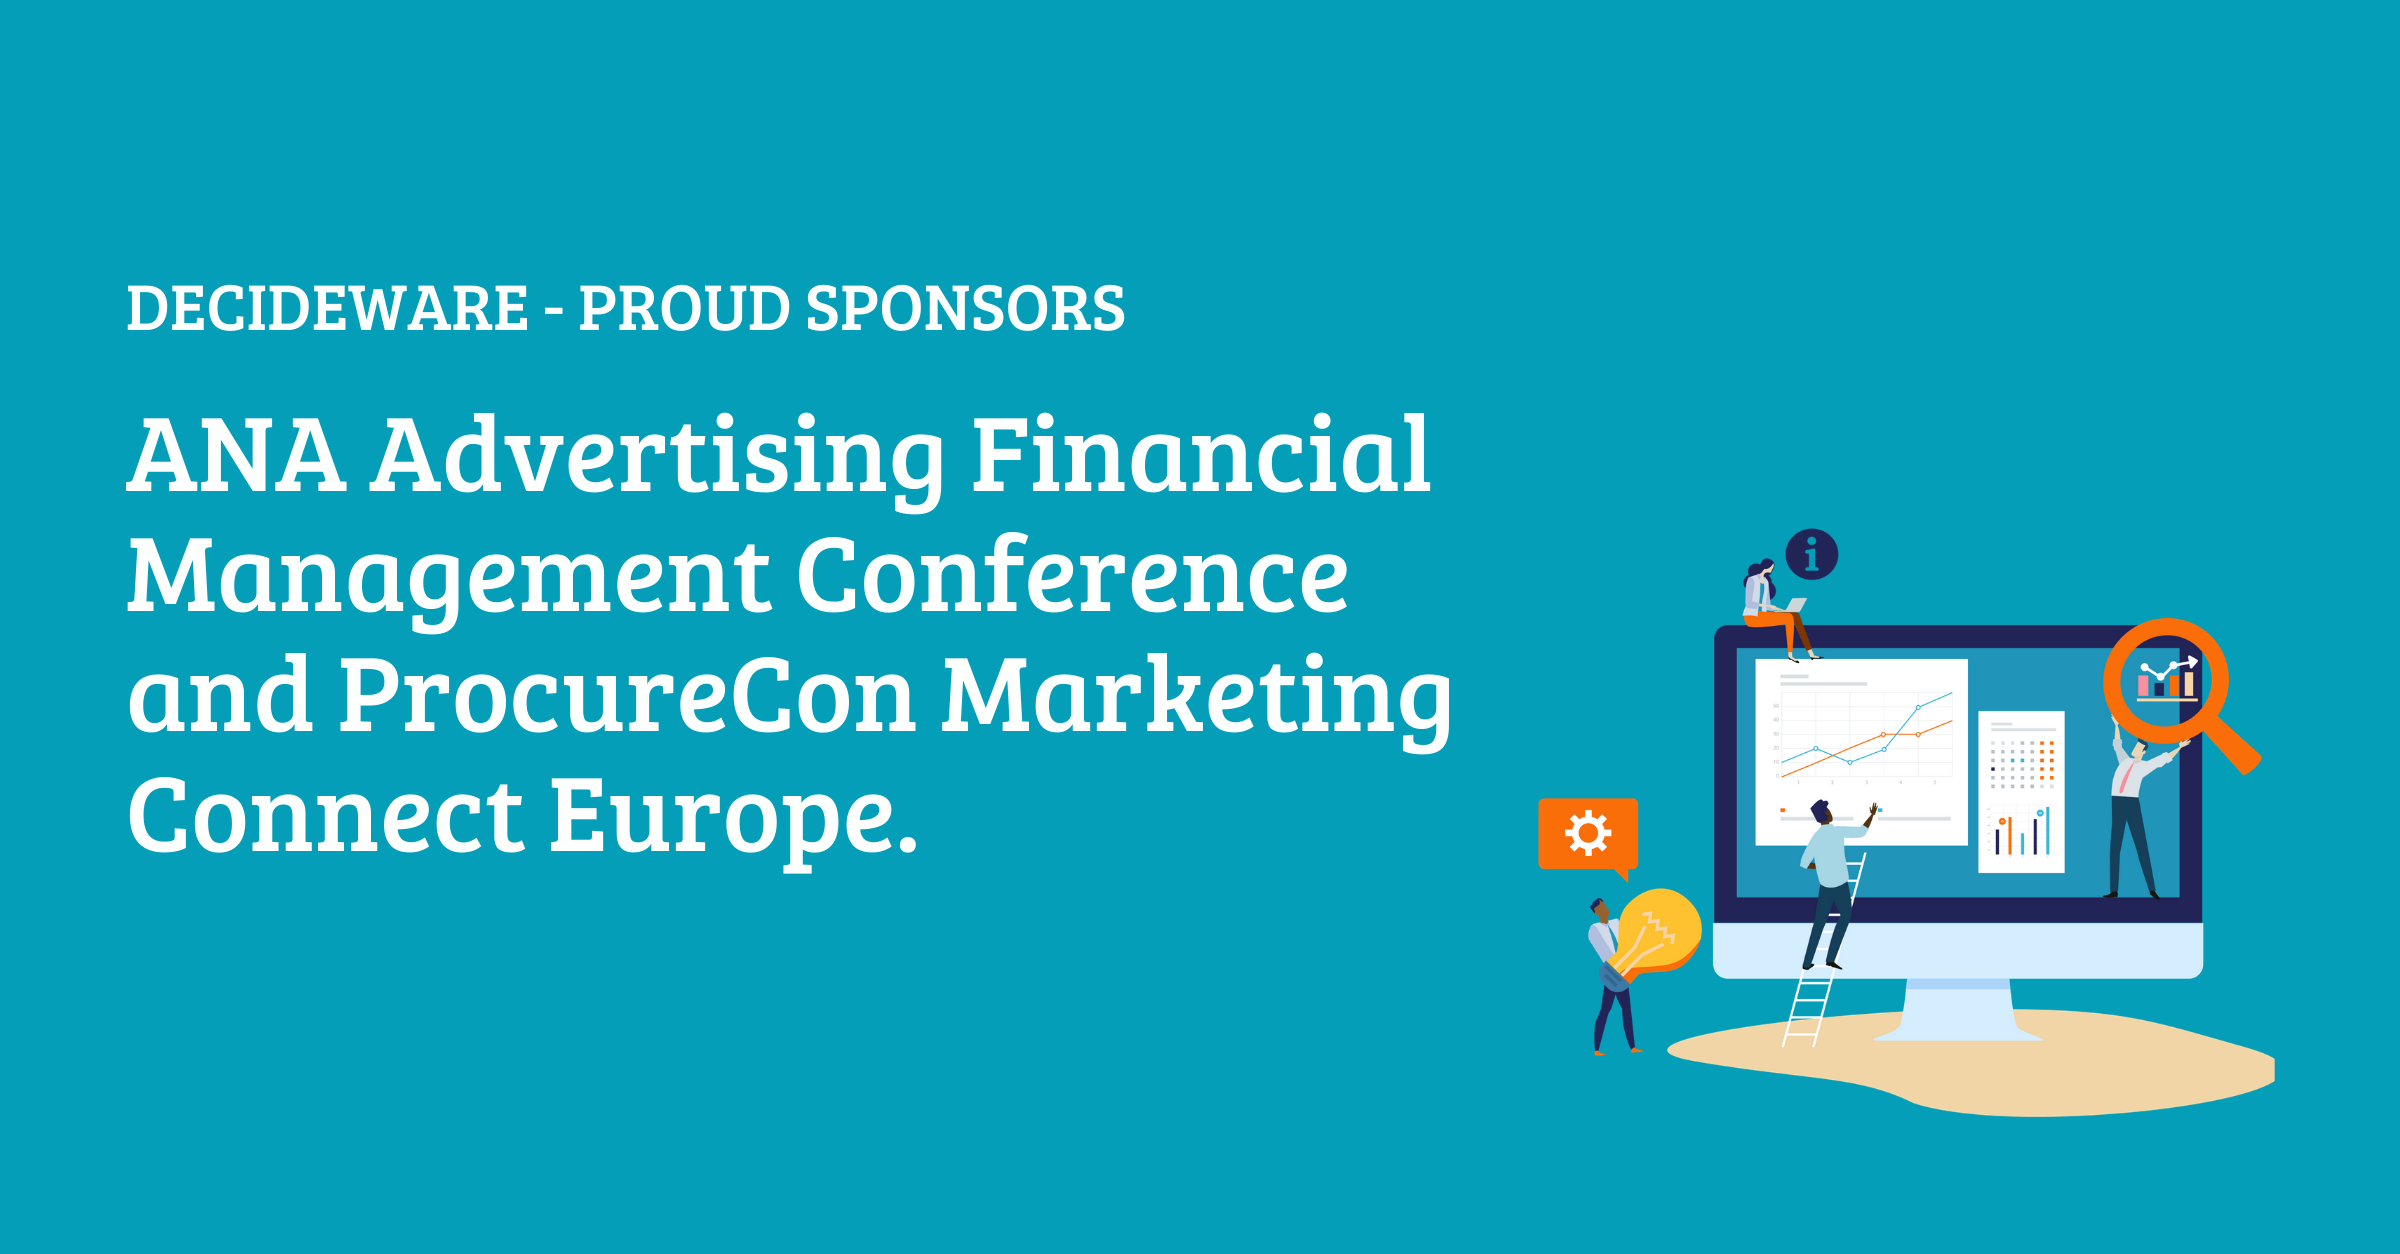 ANA Advertising Financial Management Conference and ProcureCon Marketing Connect Europe.